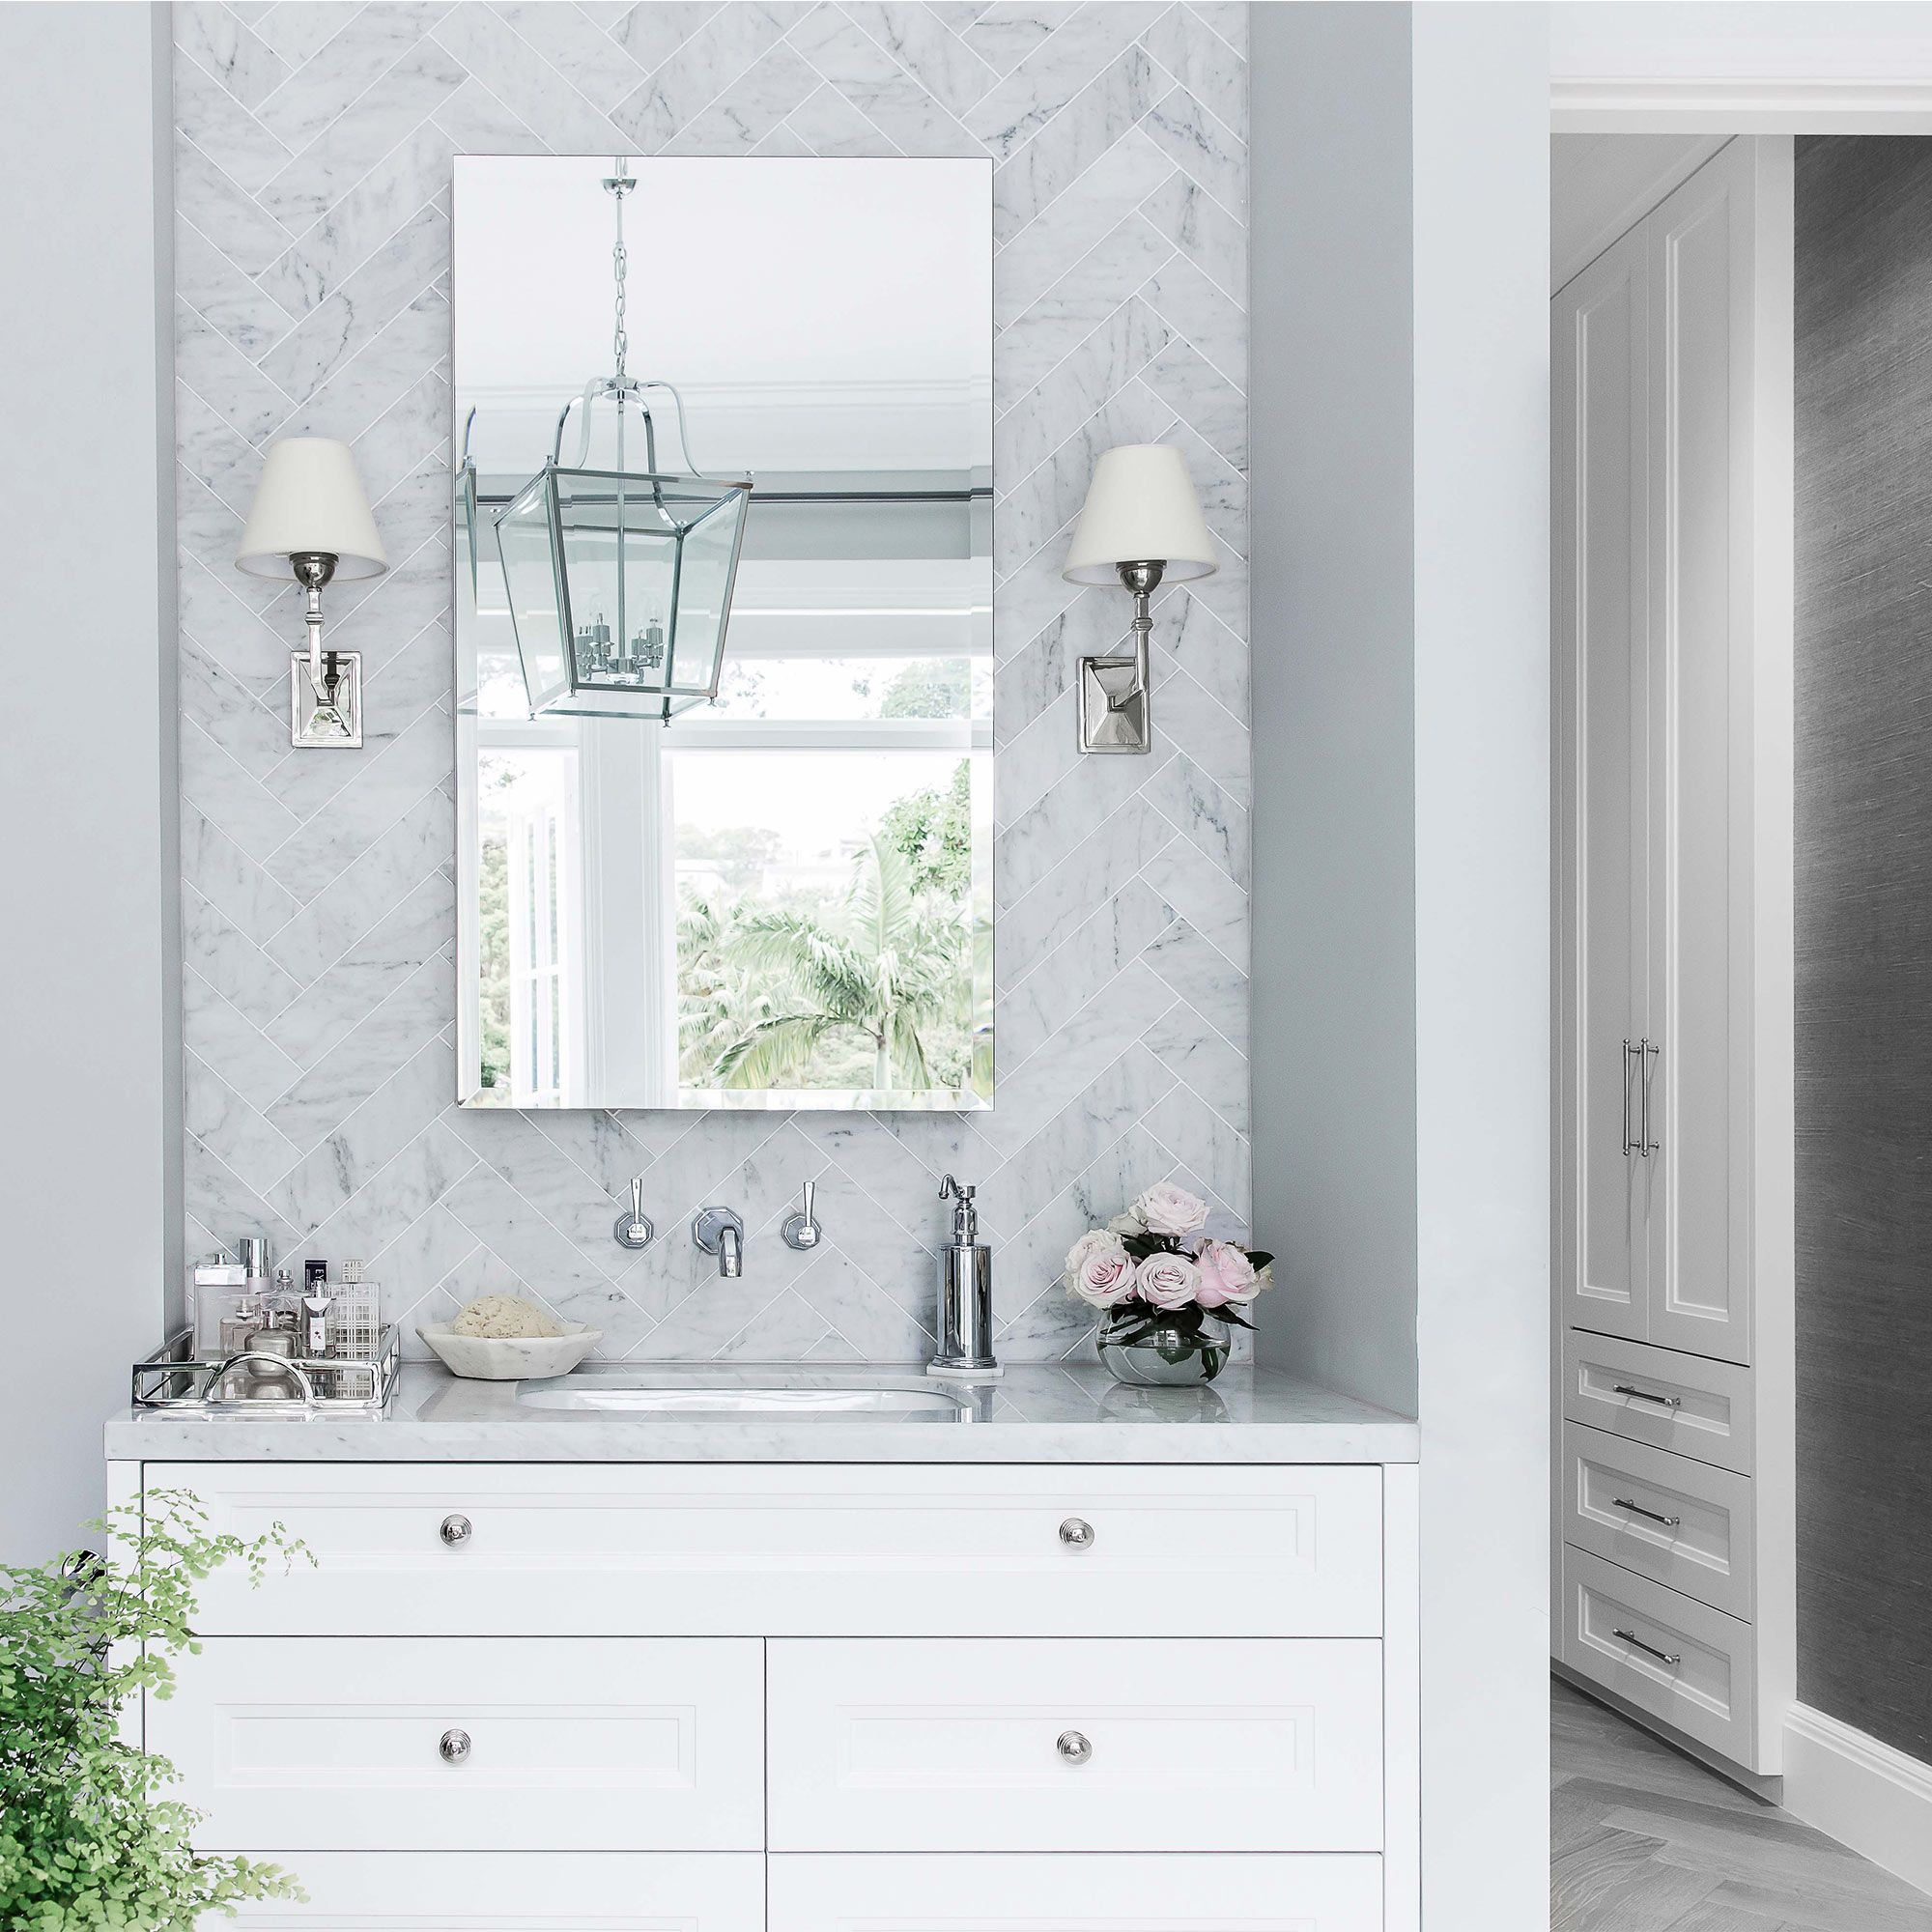 Custom Design Bathrooms Prepossessing Refined Sophistication In This Custom Designed Bathroomcoco Inspiration